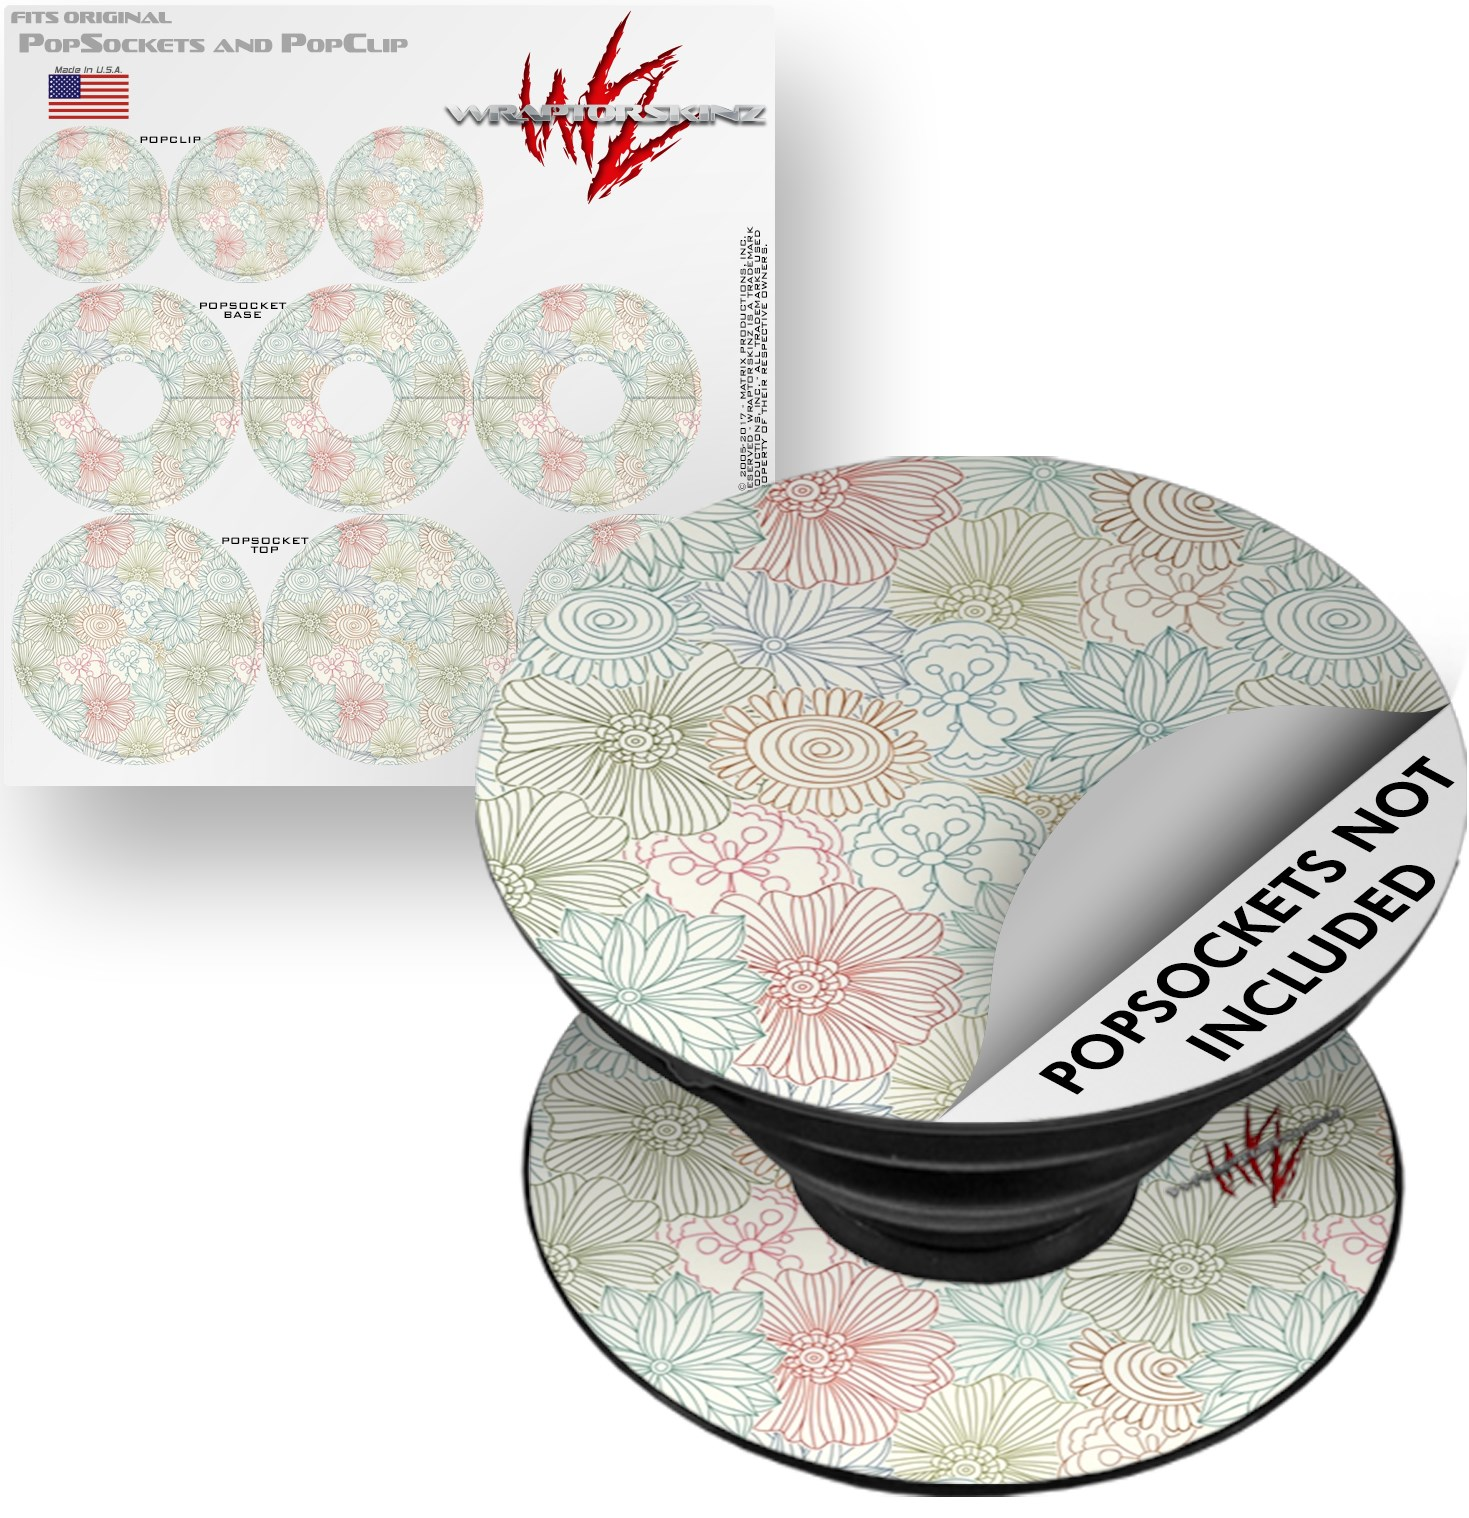 Decal Style Vinyl Skin Wrap 3 Pack for PopSockets Flowers Pattern 02 (POPSOCKET NOT INCLUDED) by WraptorSkinz